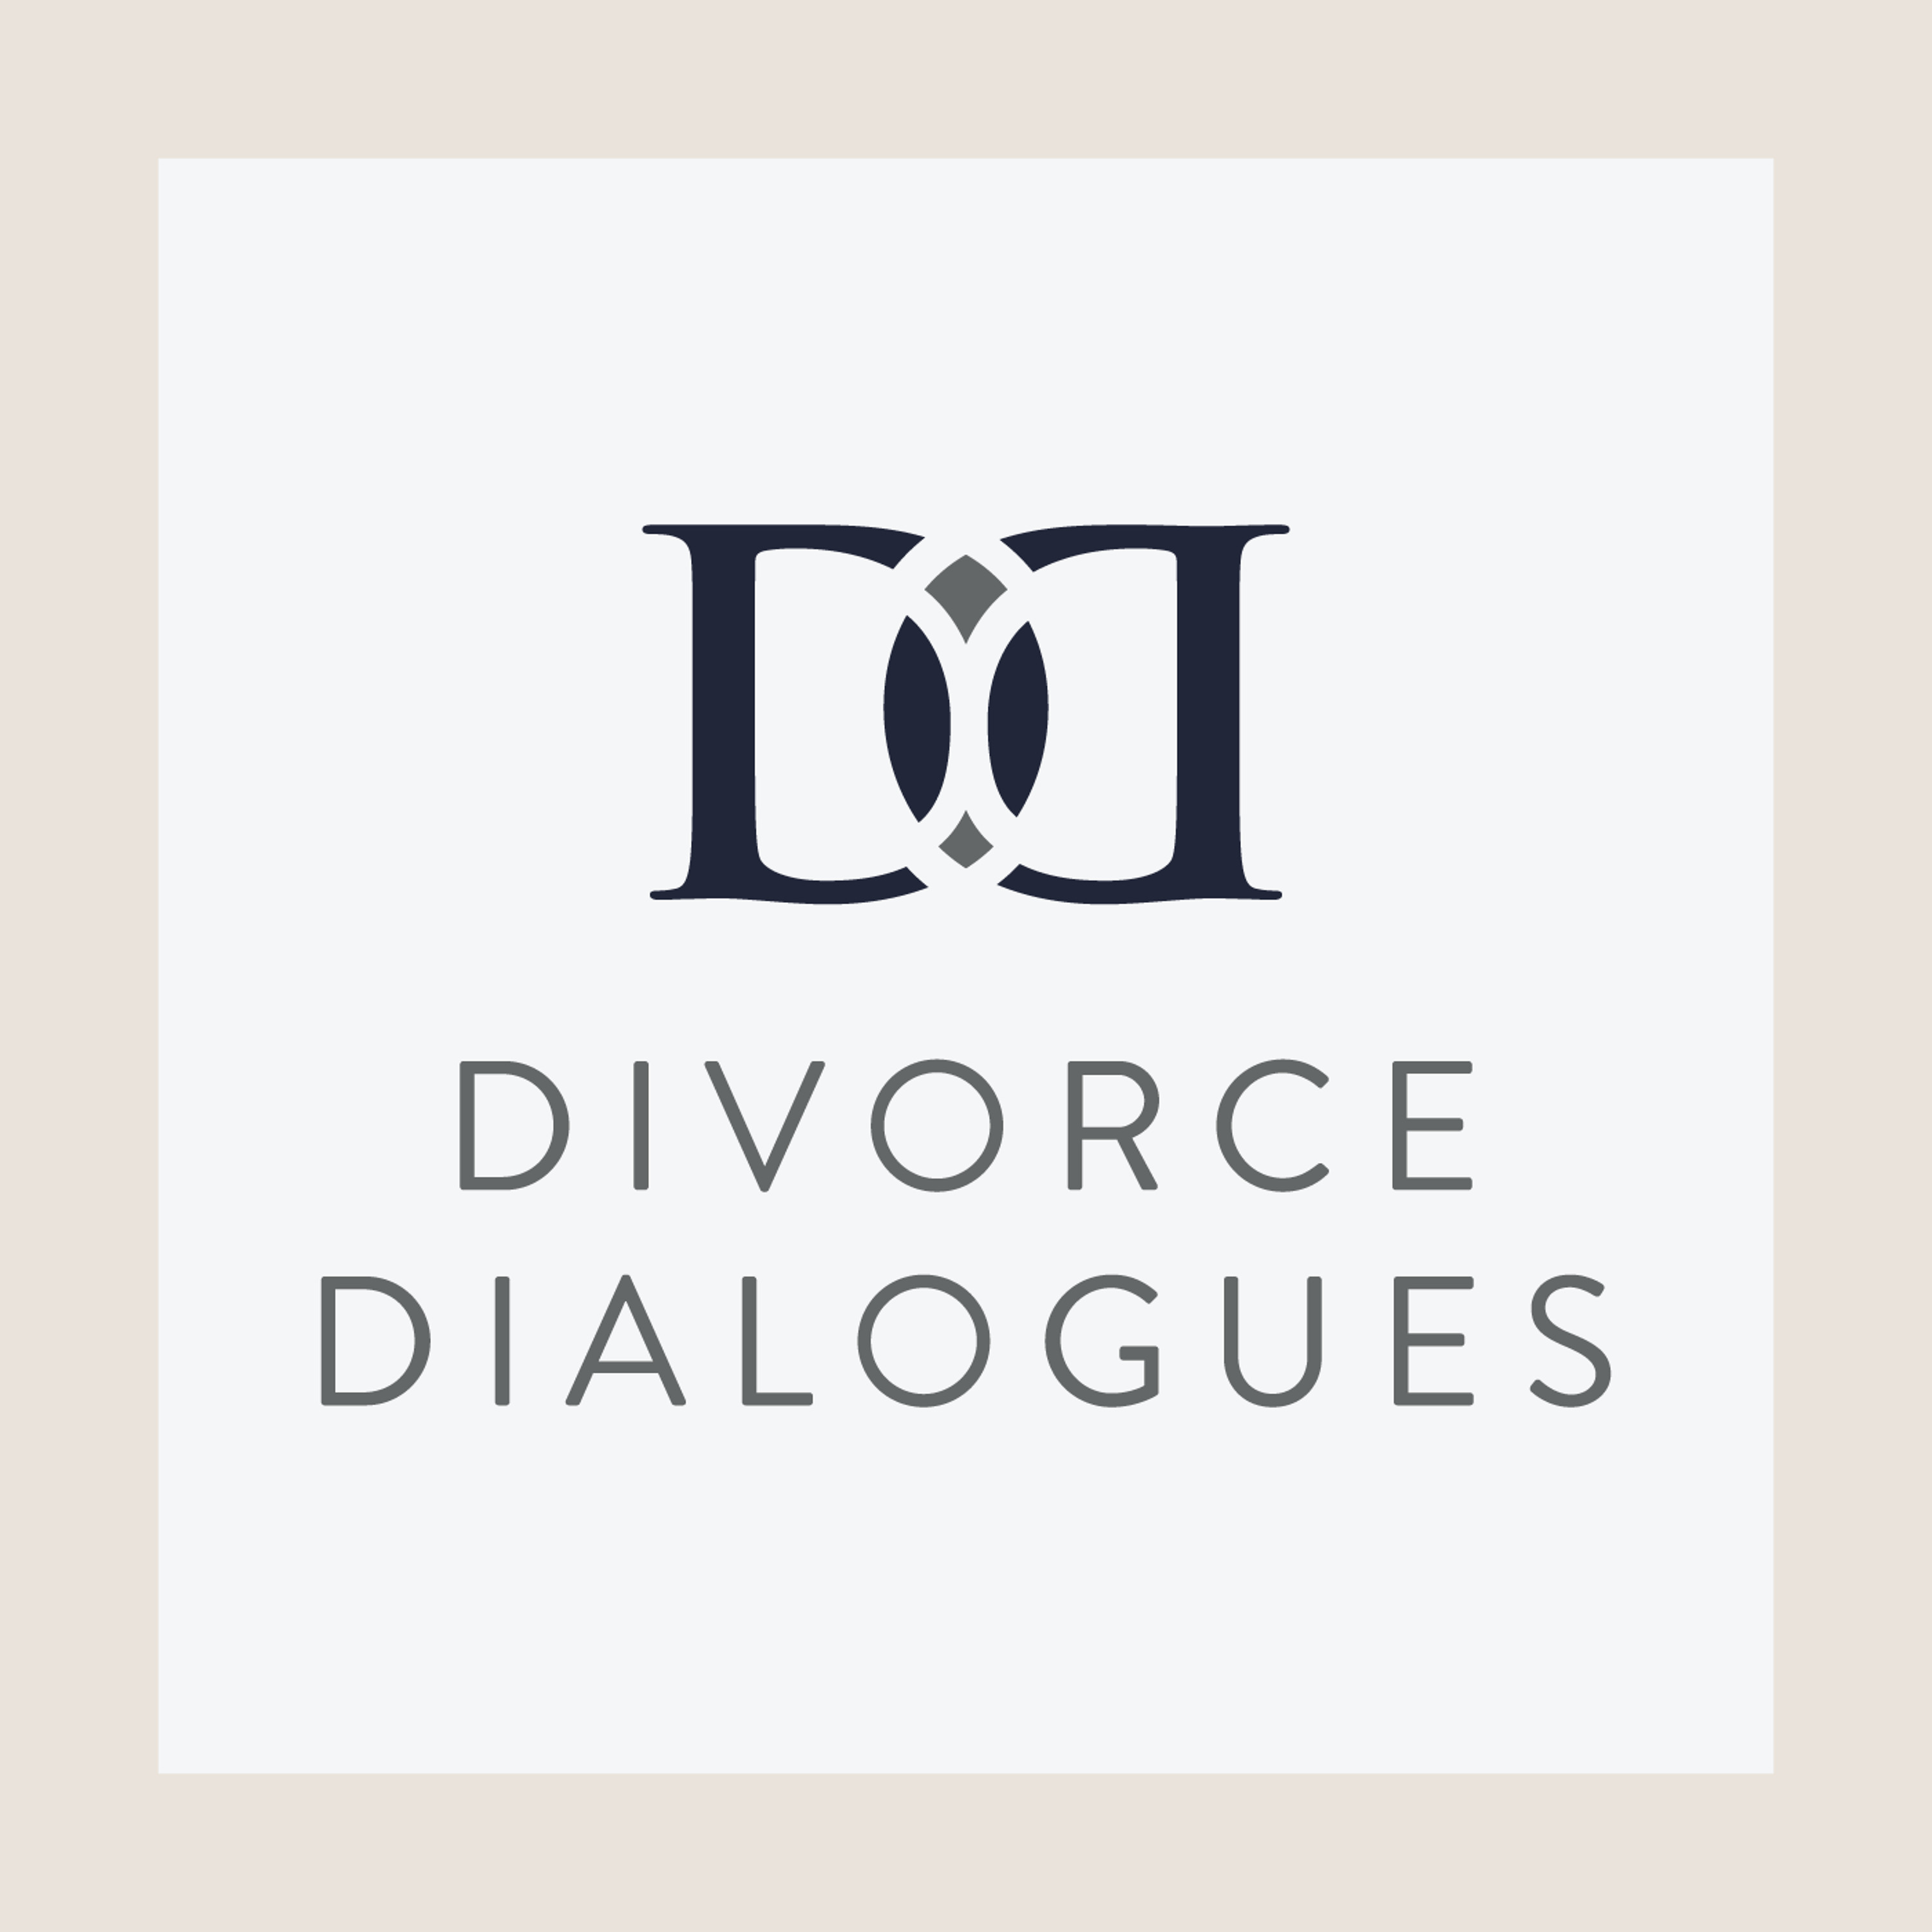 Divorce Dialogues - Maintaining Presence and Connection in a Virtual World with Nancy Colier